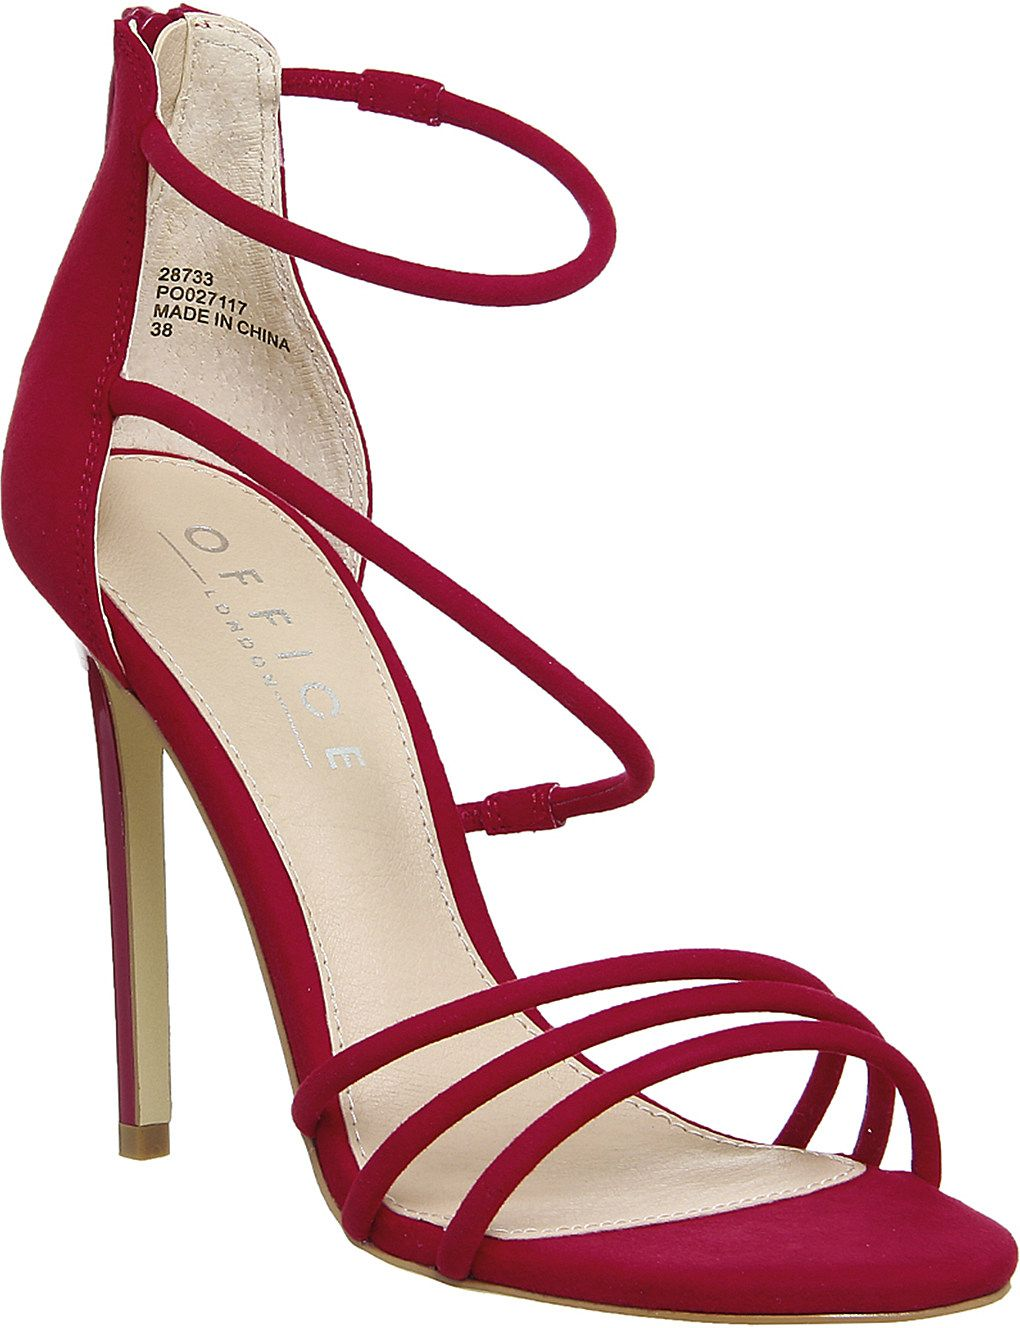 OFFICE - Harness Strappy slim heeled sandals | Selfridges.com